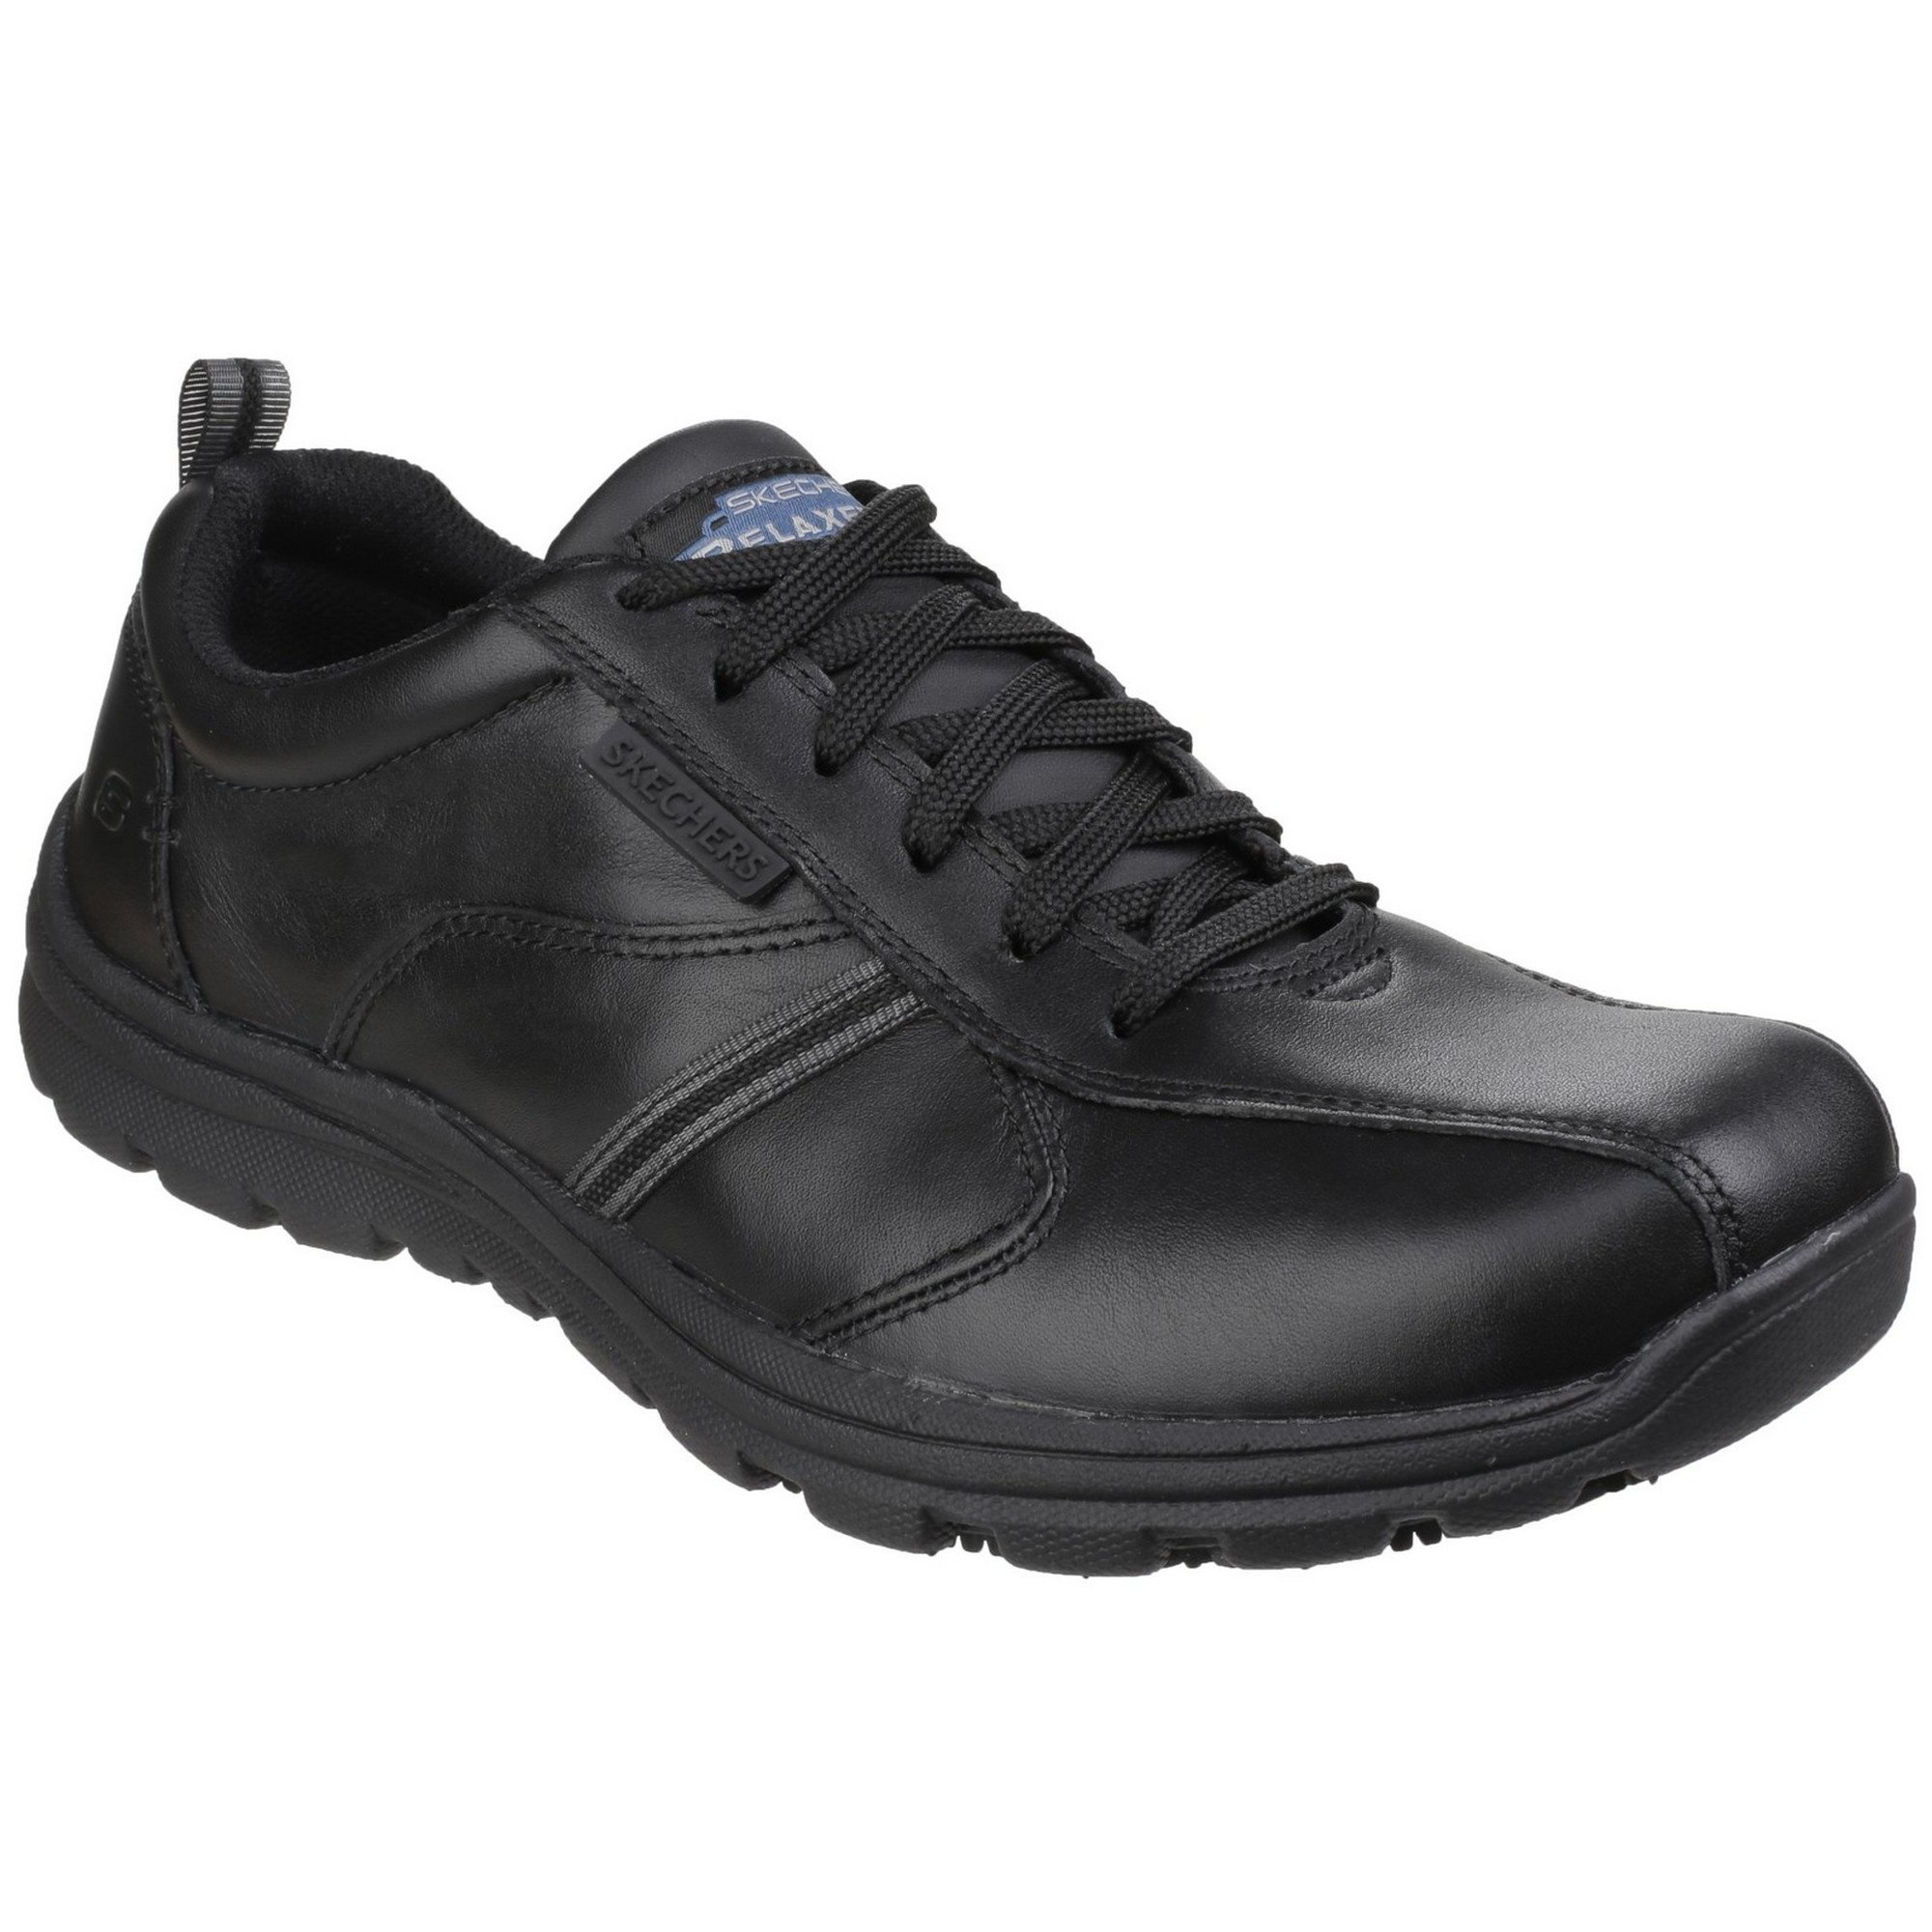 Skechers Occupational Mens Hobber Frat Slip Resistant Lace up Work Shoes (9 US) (Black)